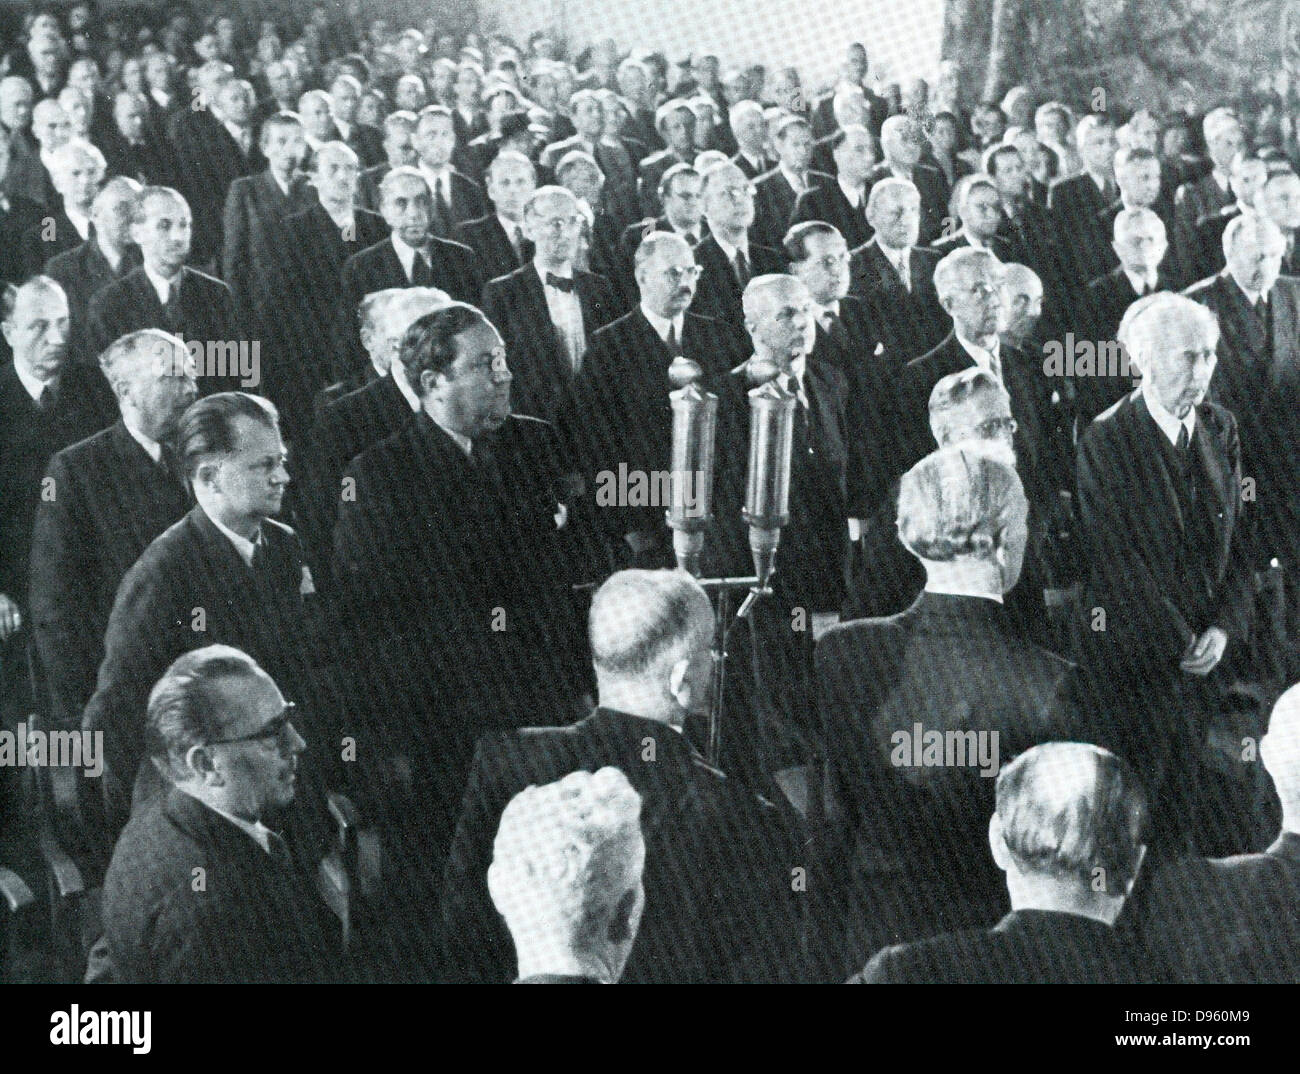 Members of the Bundesraat or Parliament of West Germany in 1950. - Stock Image